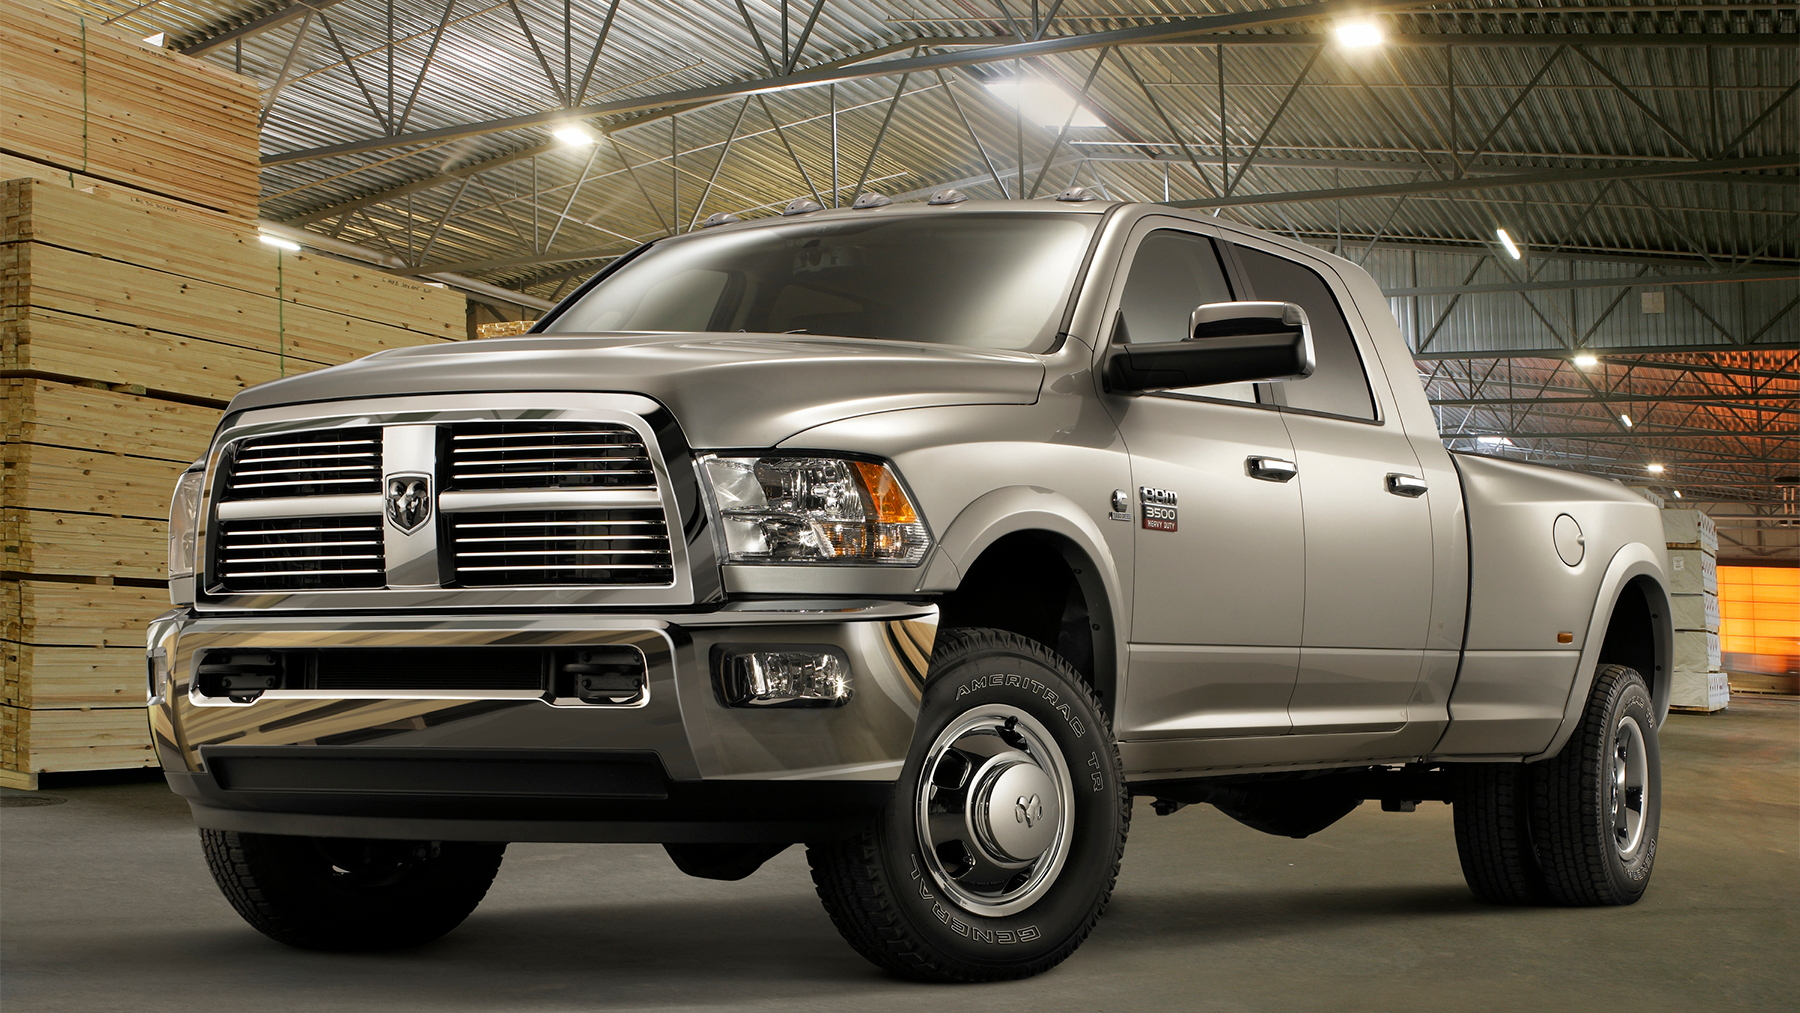 2010 dodge ram heavy duty 2500 3500 011